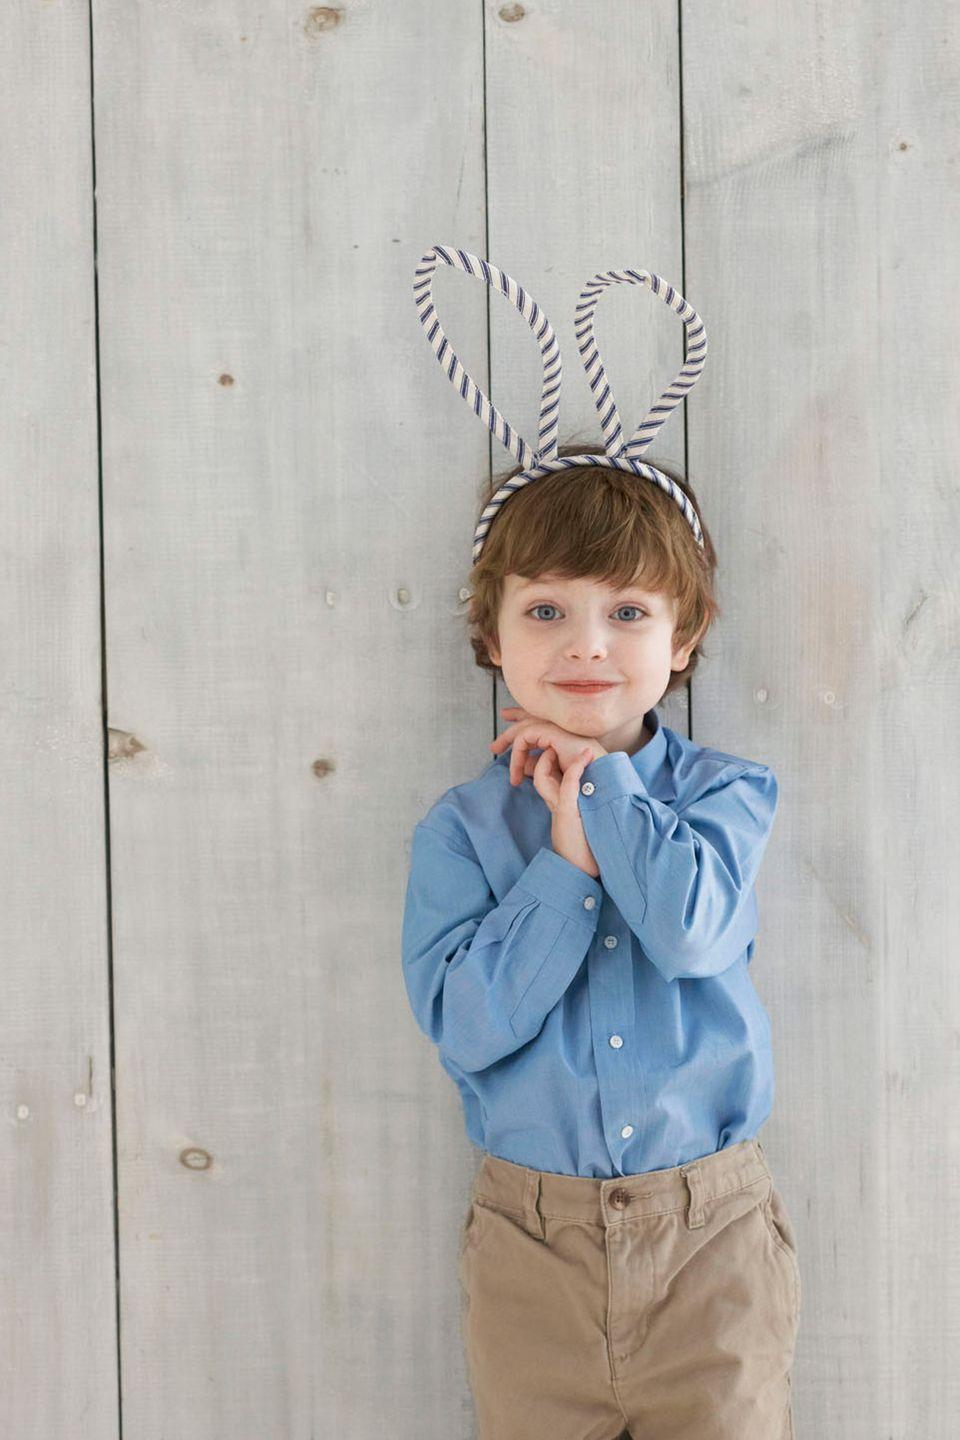 <p>To stitch up one of these kid-friendly accessories, you'll need a child-size headband and 11⁄2 yards of 1⁄2-inch-wide double- fold bias tape.</p><p><strong>Step 1</strong>: Cut an 18.5-inch-long piece of bias tape. Hem the cut ends under 1⁄2 inch on each side, then stitch together the long side to form a casing. Fold the casing in half so that the ends touch and use a straight pin to mark the fold's center.</p><p><strong>Step 2</strong>: Feed an extra-thick, 12-inch-long pipe cleaner through one end of the casing, stopping at the pin. Feed a second pipe cleaner through the casing's other end until it, too, meets the pin; remove pin. Bring the casing's open ends toward each other and twist the exposed pipe cleaners together to form a rabbit ear shape. Repeat steps one and two to make a second ear.</p><p><strong>Step 3</strong>: Cut a piece of bias tape the length of the headband, plus one extra inch. Wrap the tape over the headband, then use pins to mark the two spots where you want to attach the ears (use the photo at left for guidance).</p><p><strong>Step 4</strong>: Remove the tape from the headband and stitch the long side together, from the pins out to both ends of the tape; stitch these ends closed, and remove pins. Twist the ears' pipe-cleaner ends around the headband in the desired spots, then slide each end of the headband into the casing. Use a needle and thread to slip-stitch the tape around and between the ears closed.</p>